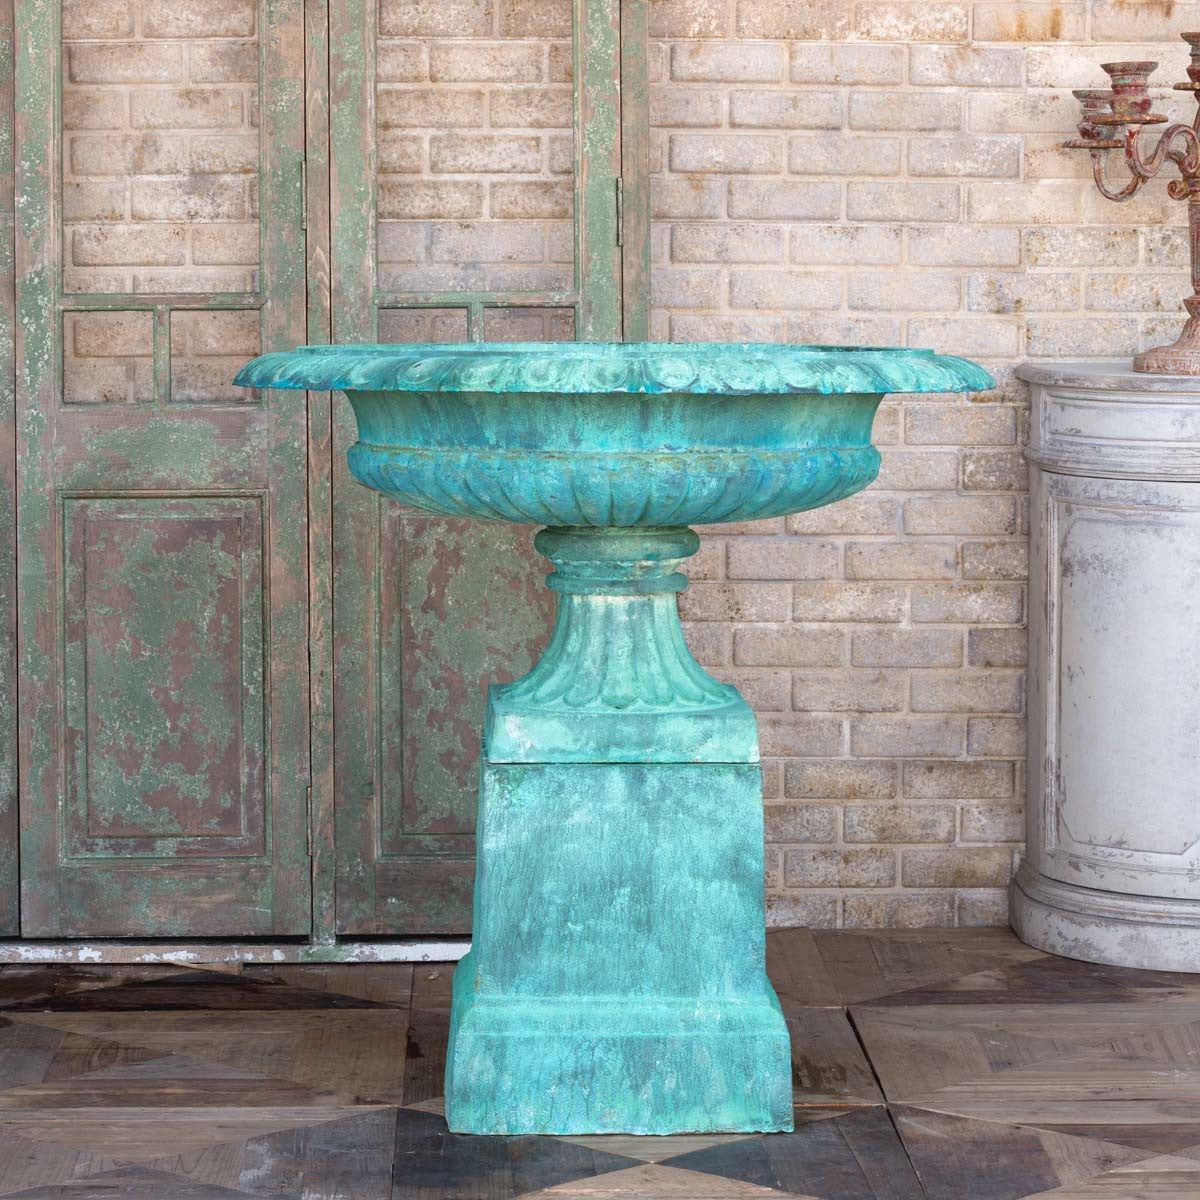 Cast Iron Estate Urn with Pedestal